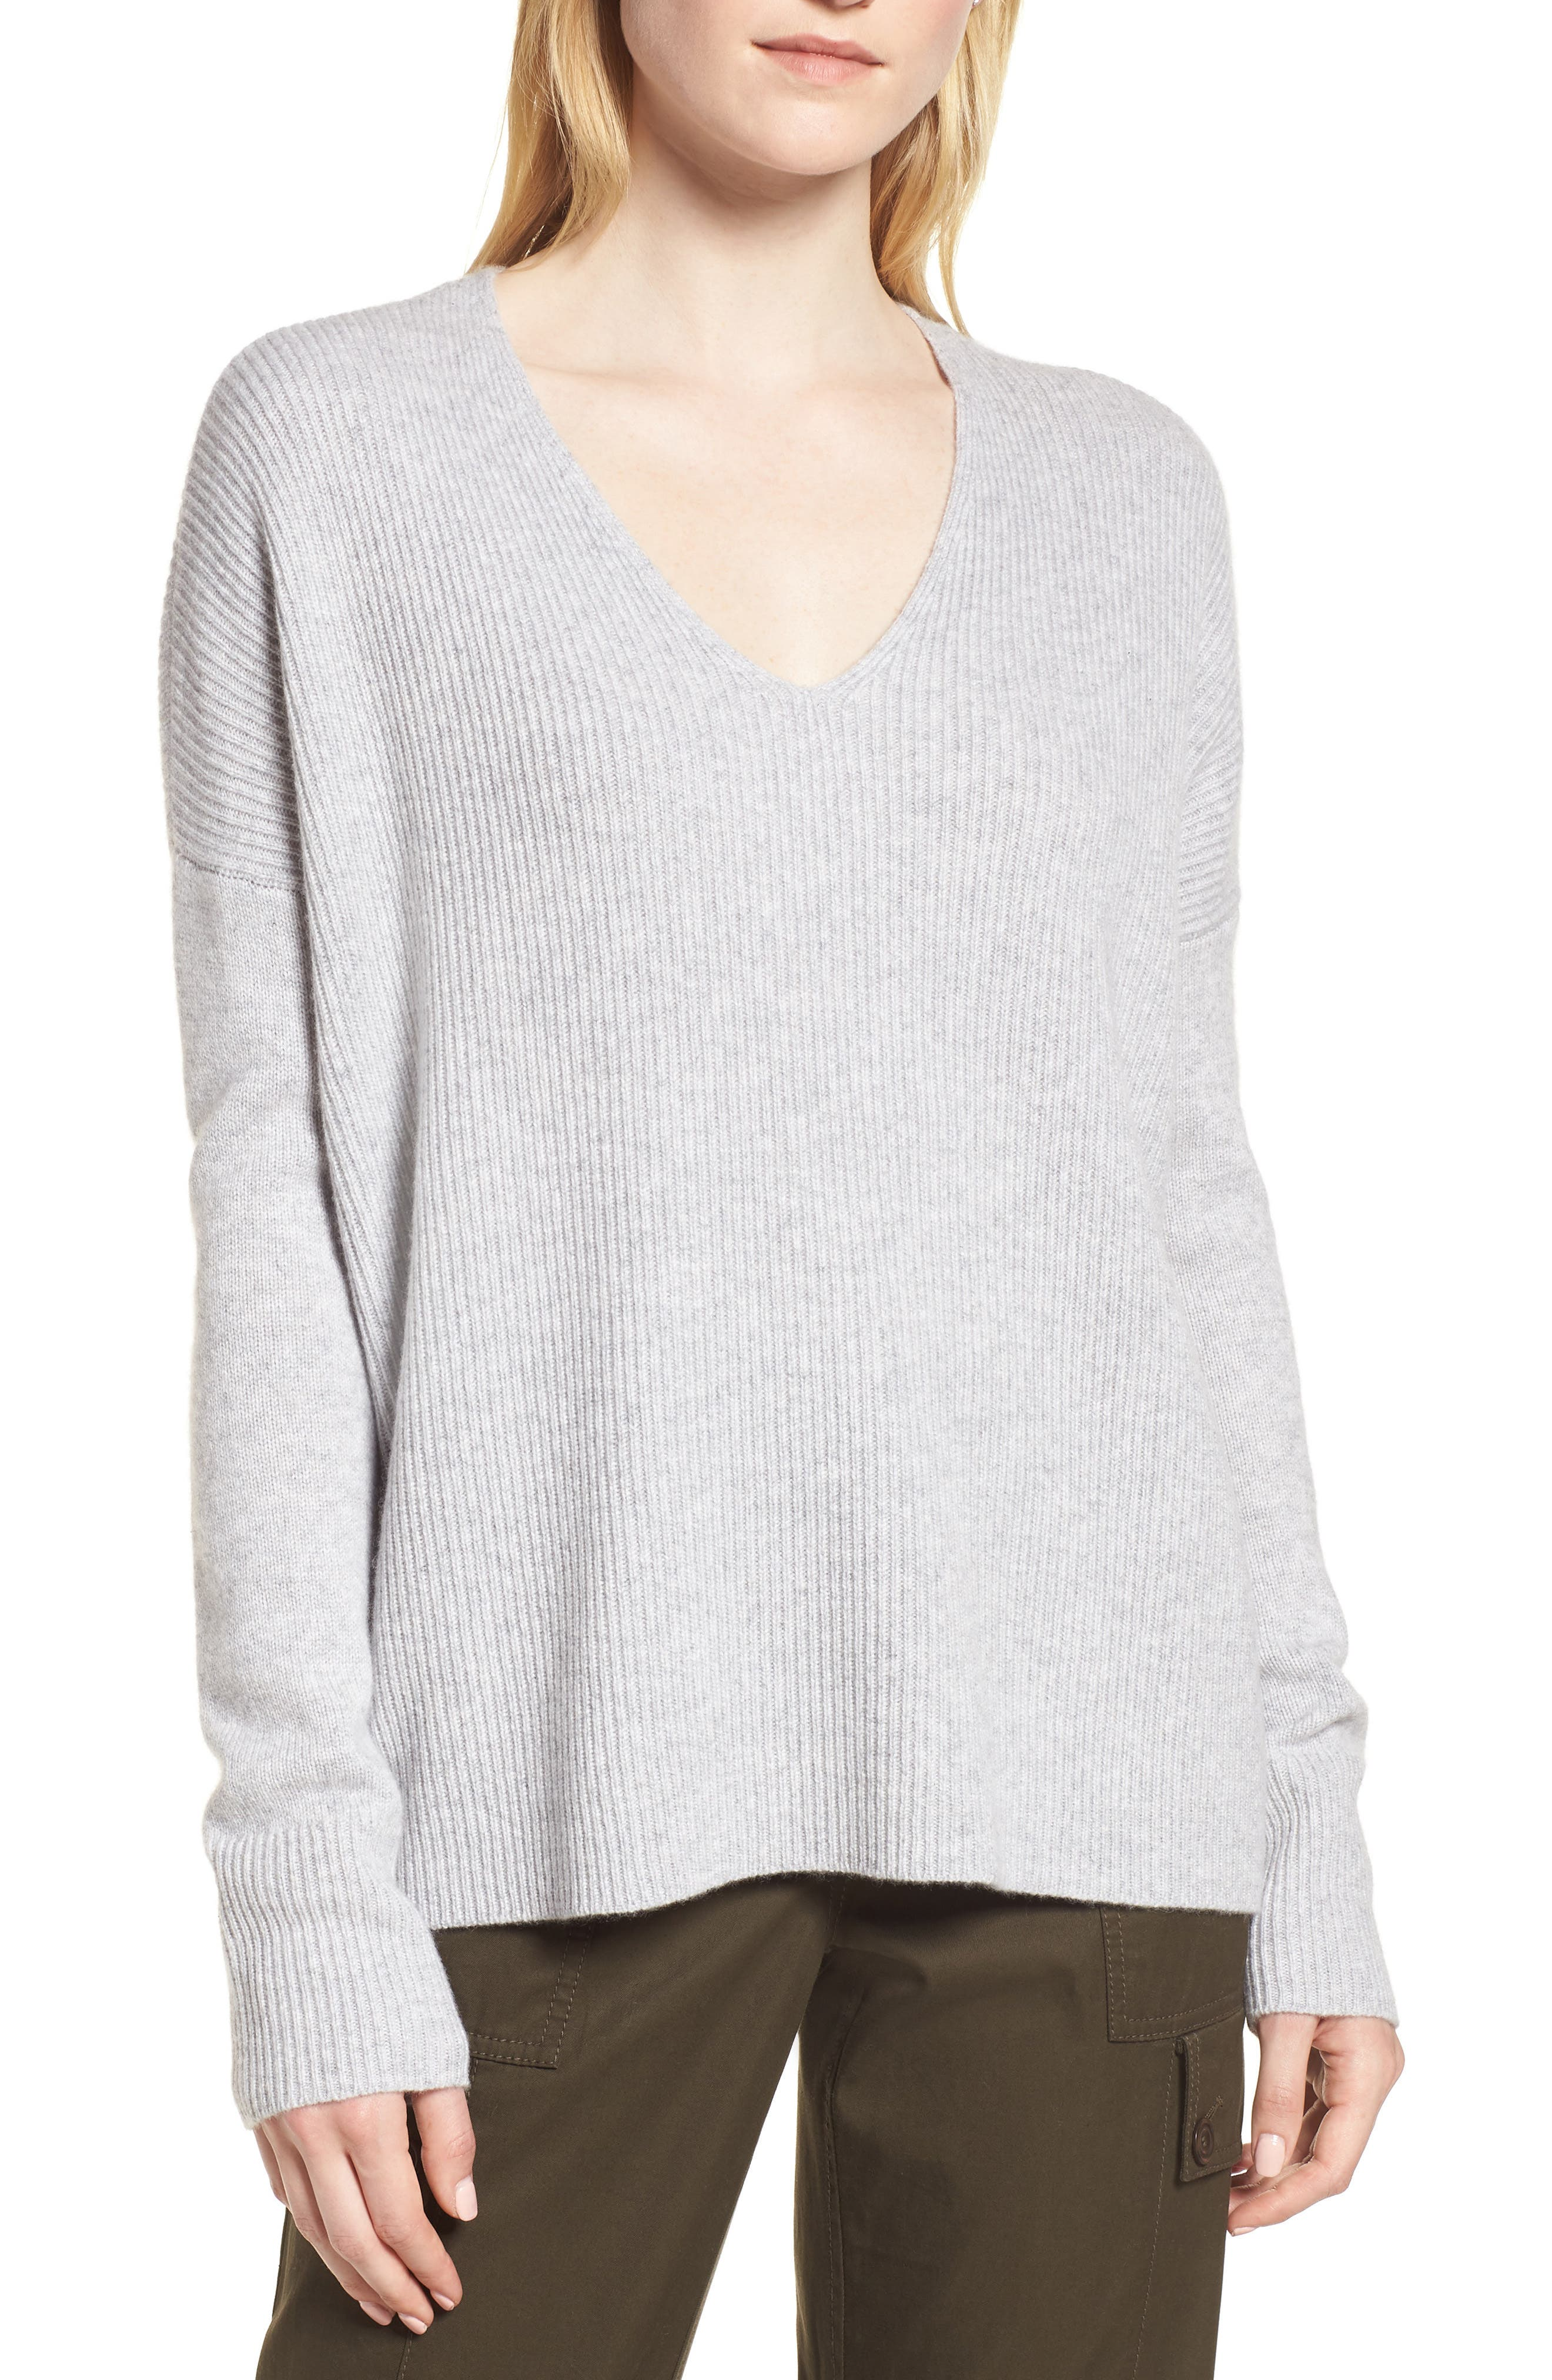 Cashmere Soft Ribbed Pullover Sweater,                             Main thumbnail 1, color,                             050